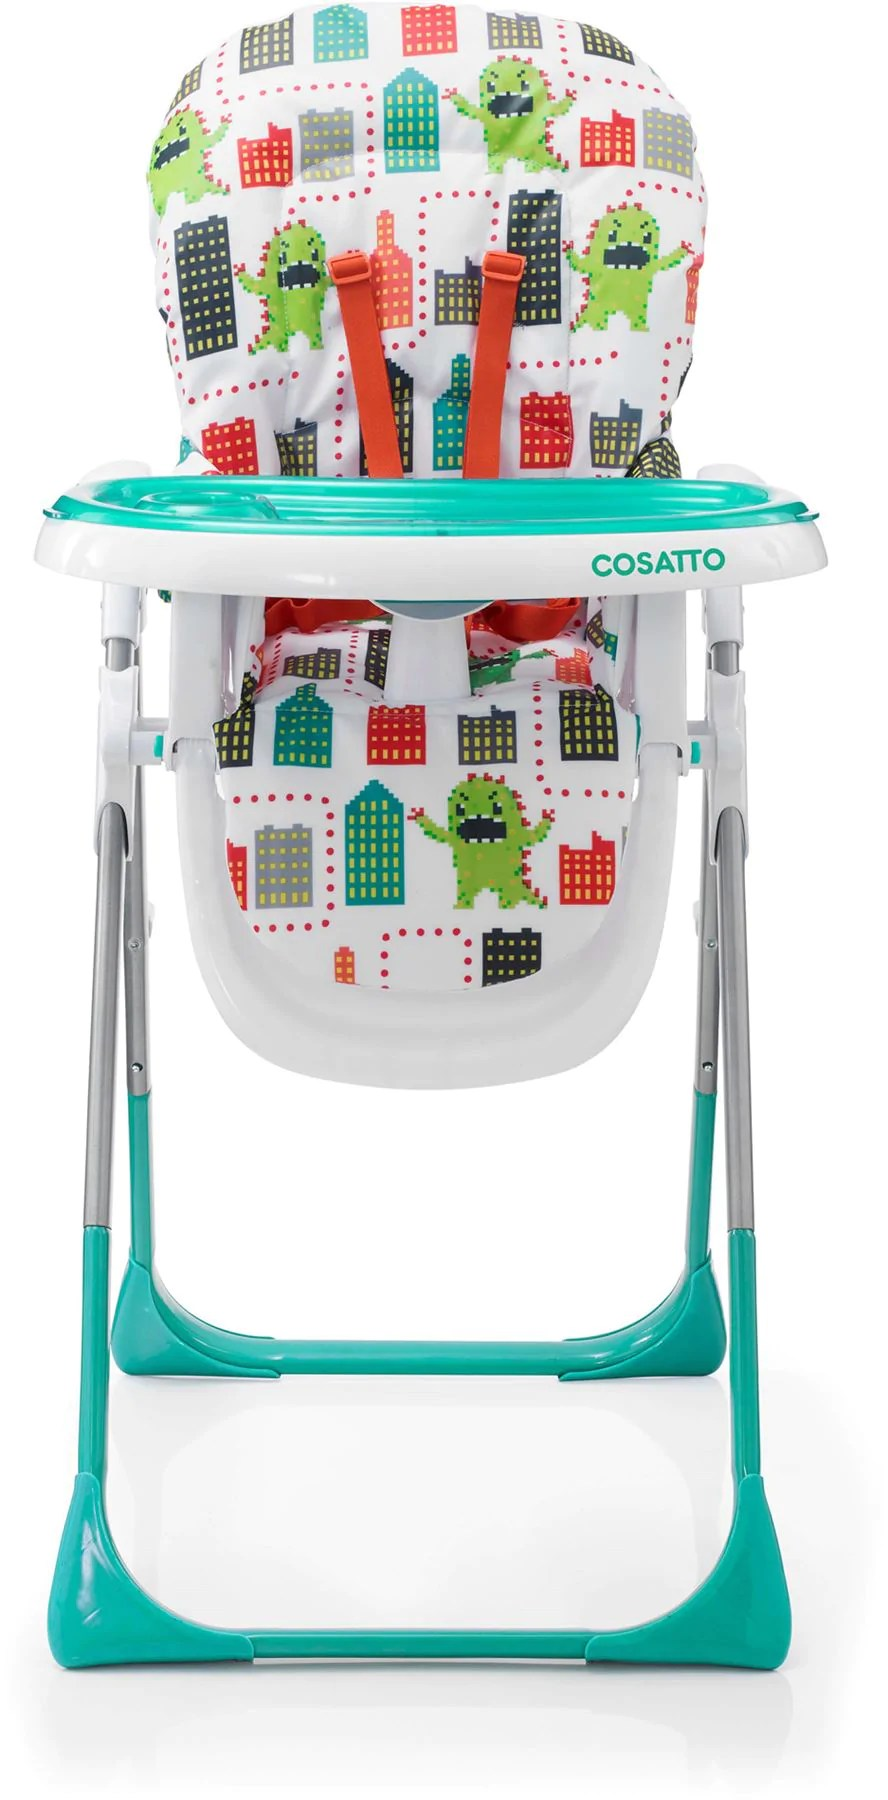 Baby Food Chair Cossatto Highchair Noodle Supa Monster Arcade Rocketbaby